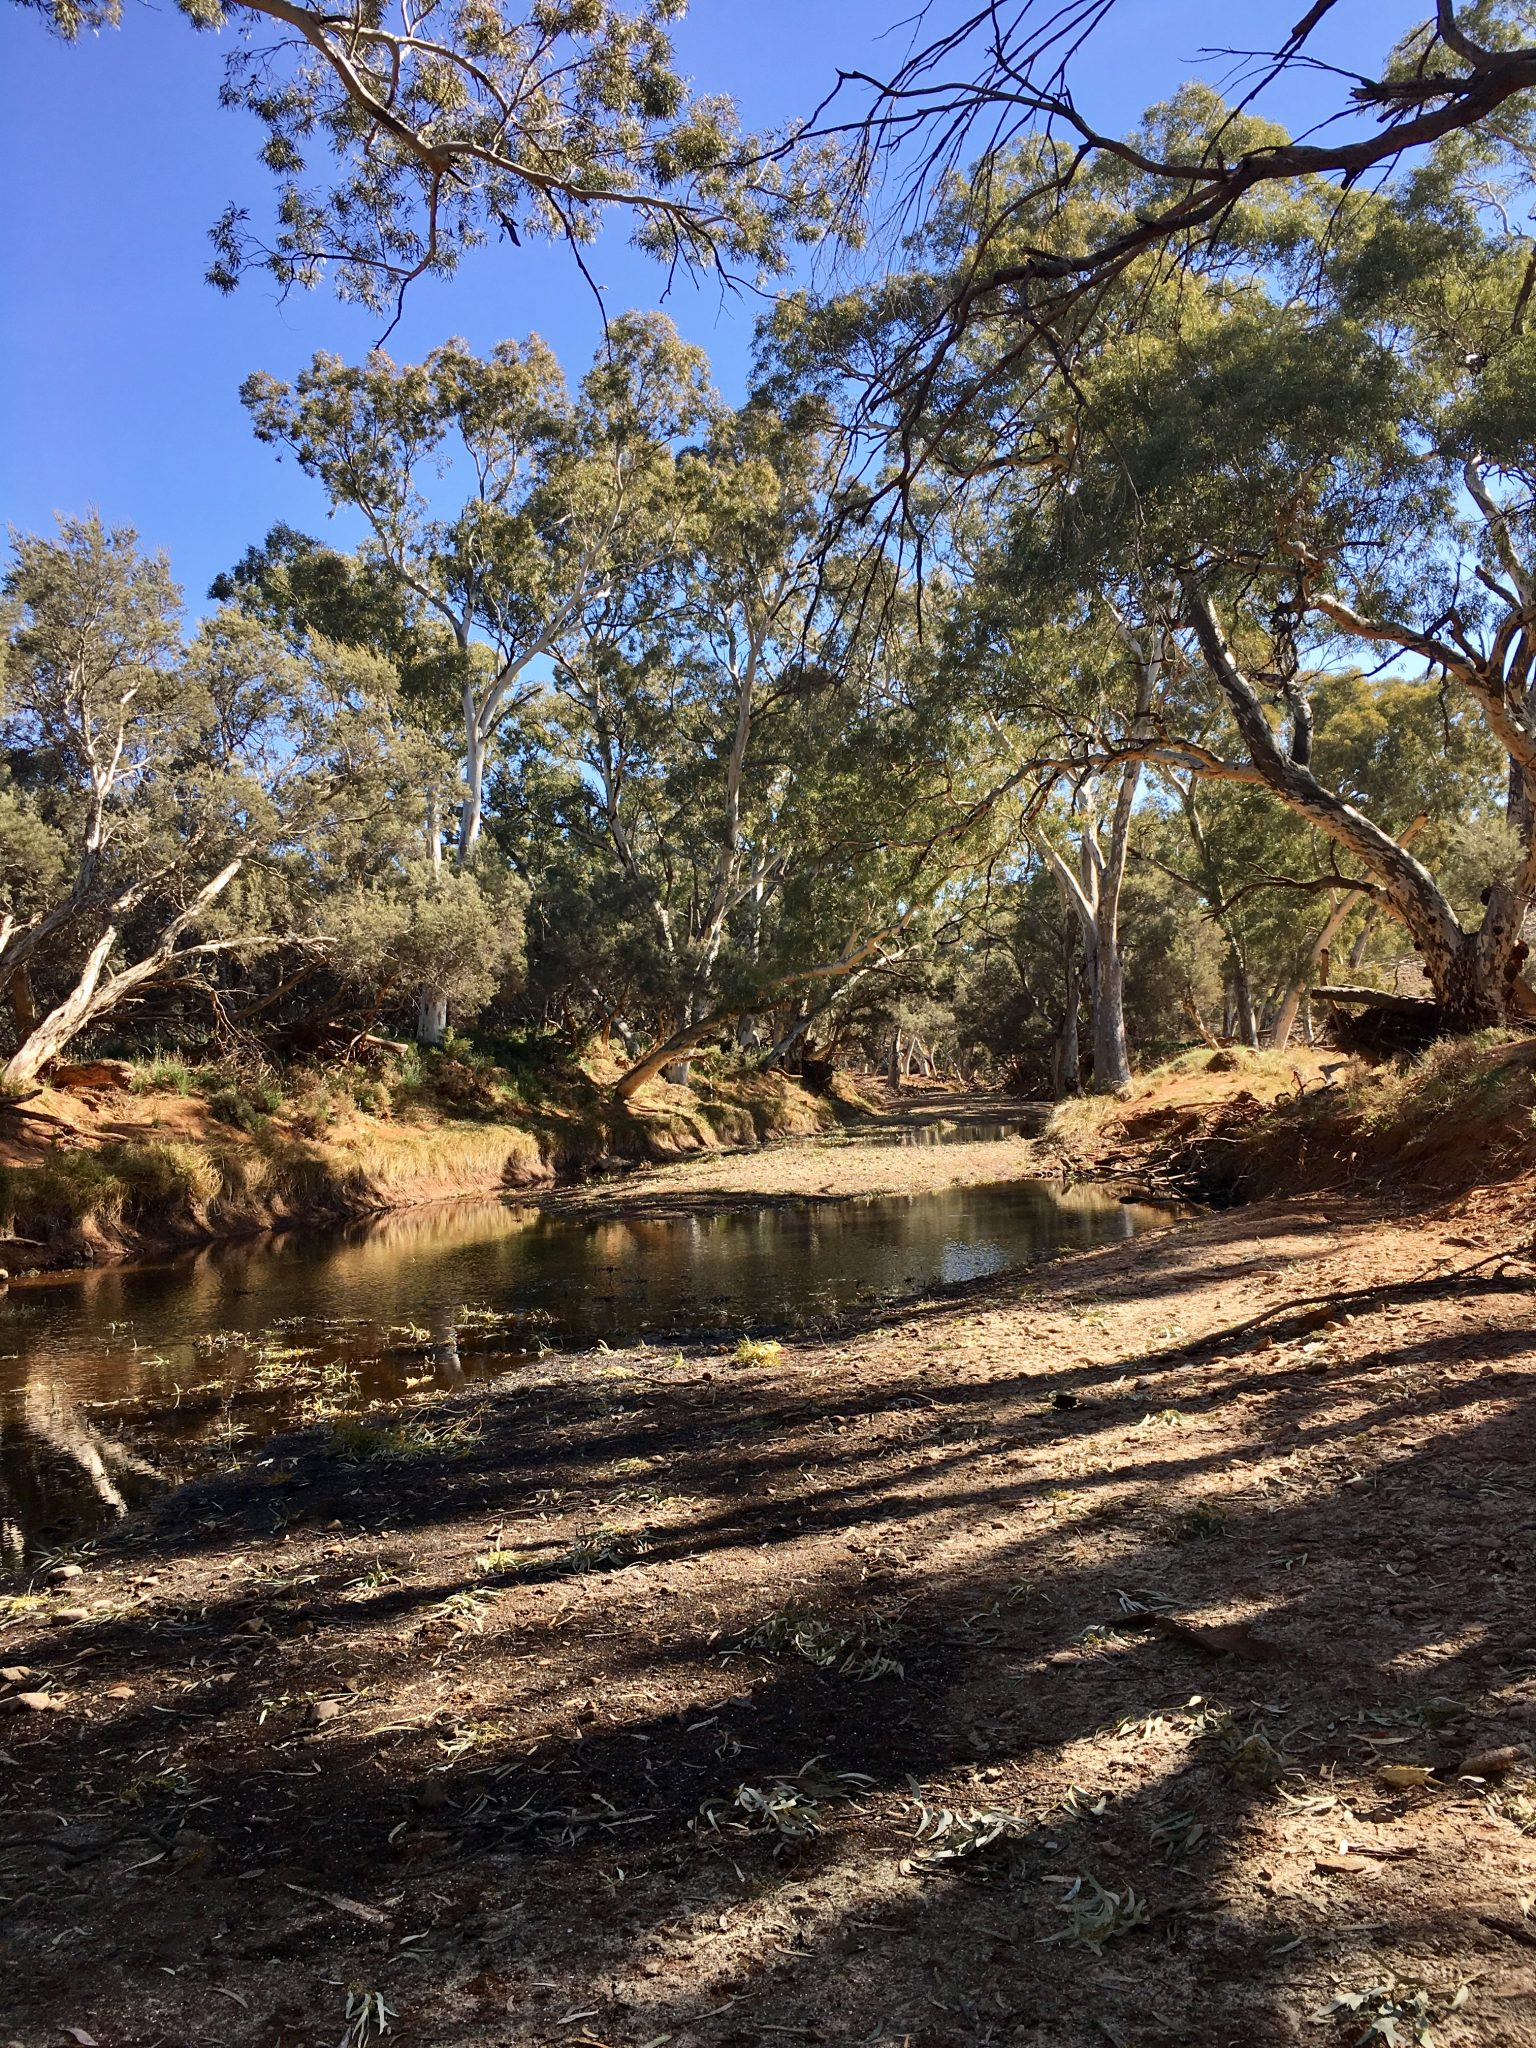 The riverbed of the Frome River in the Flinders Ranges